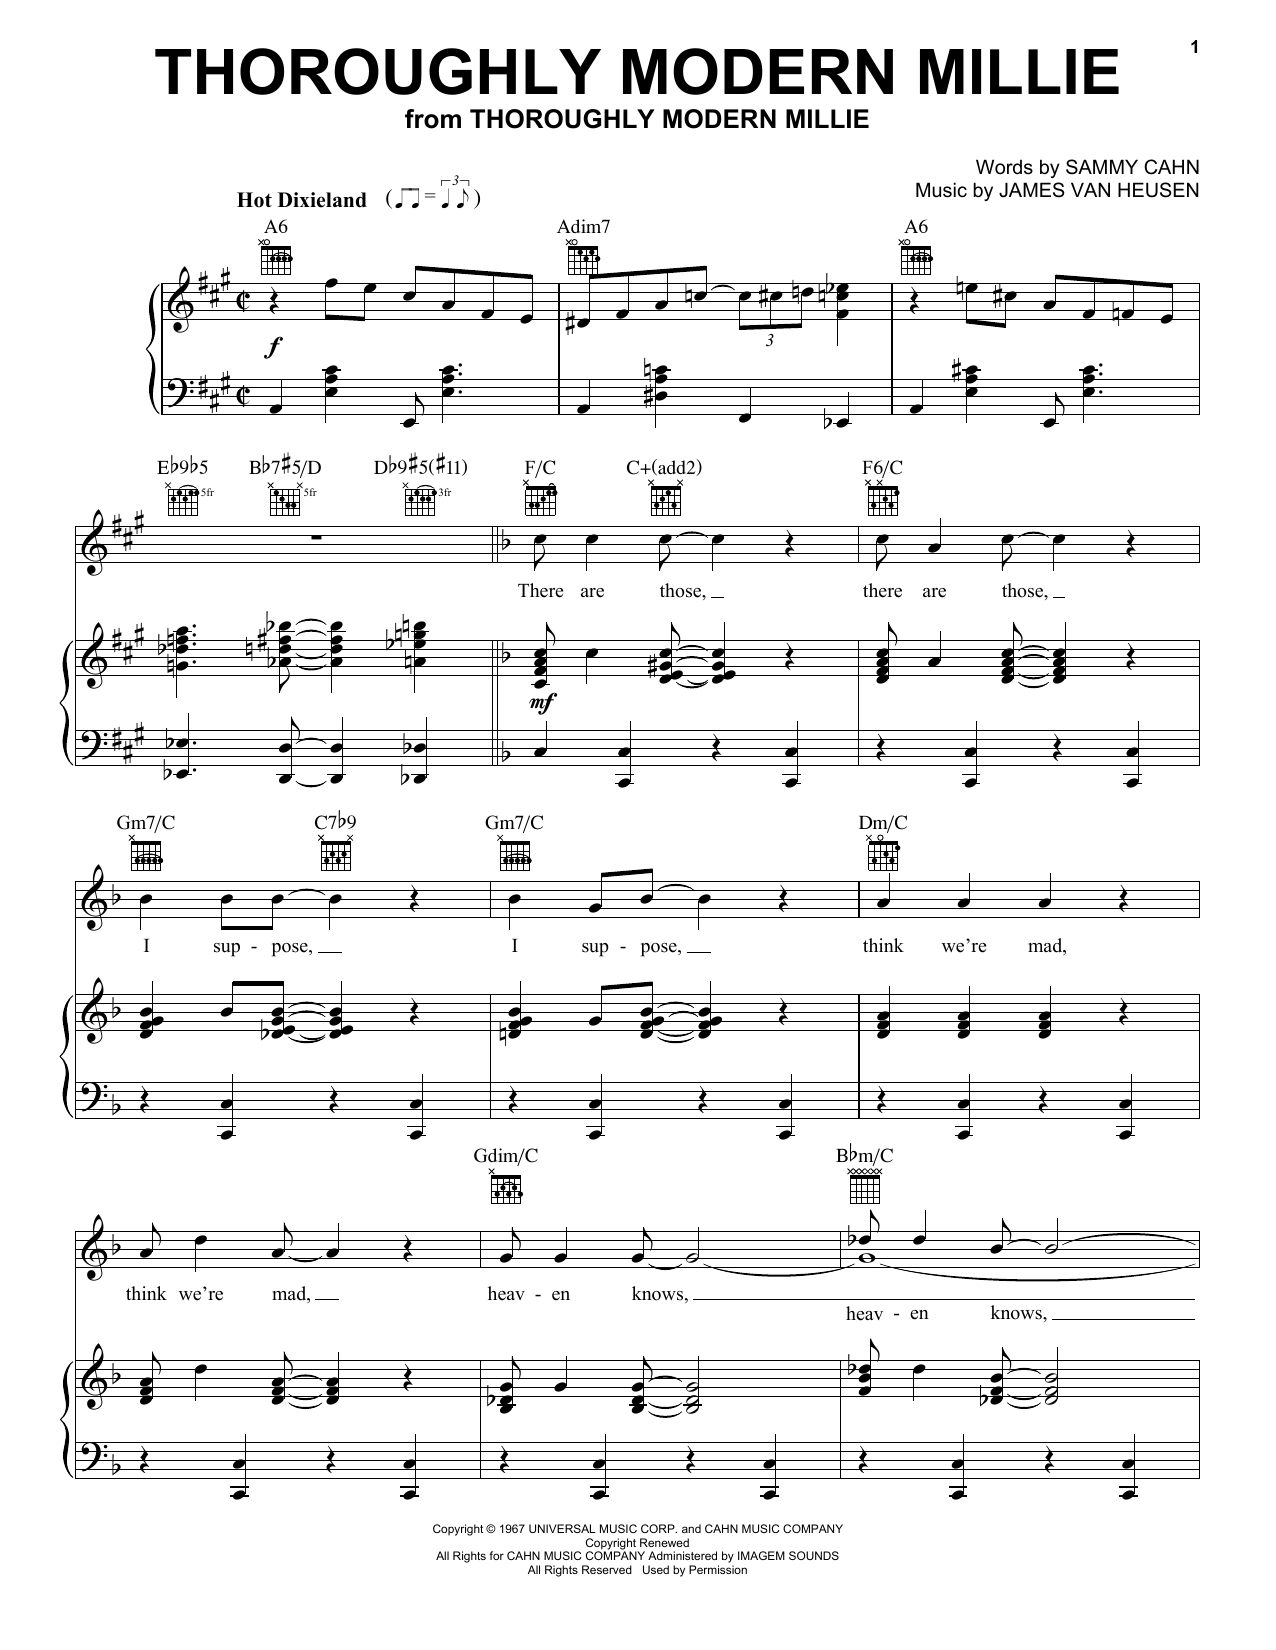 Sammy Cahn Thoroughly Modern Millie sheet music notes and chords. Download Printable PDF.